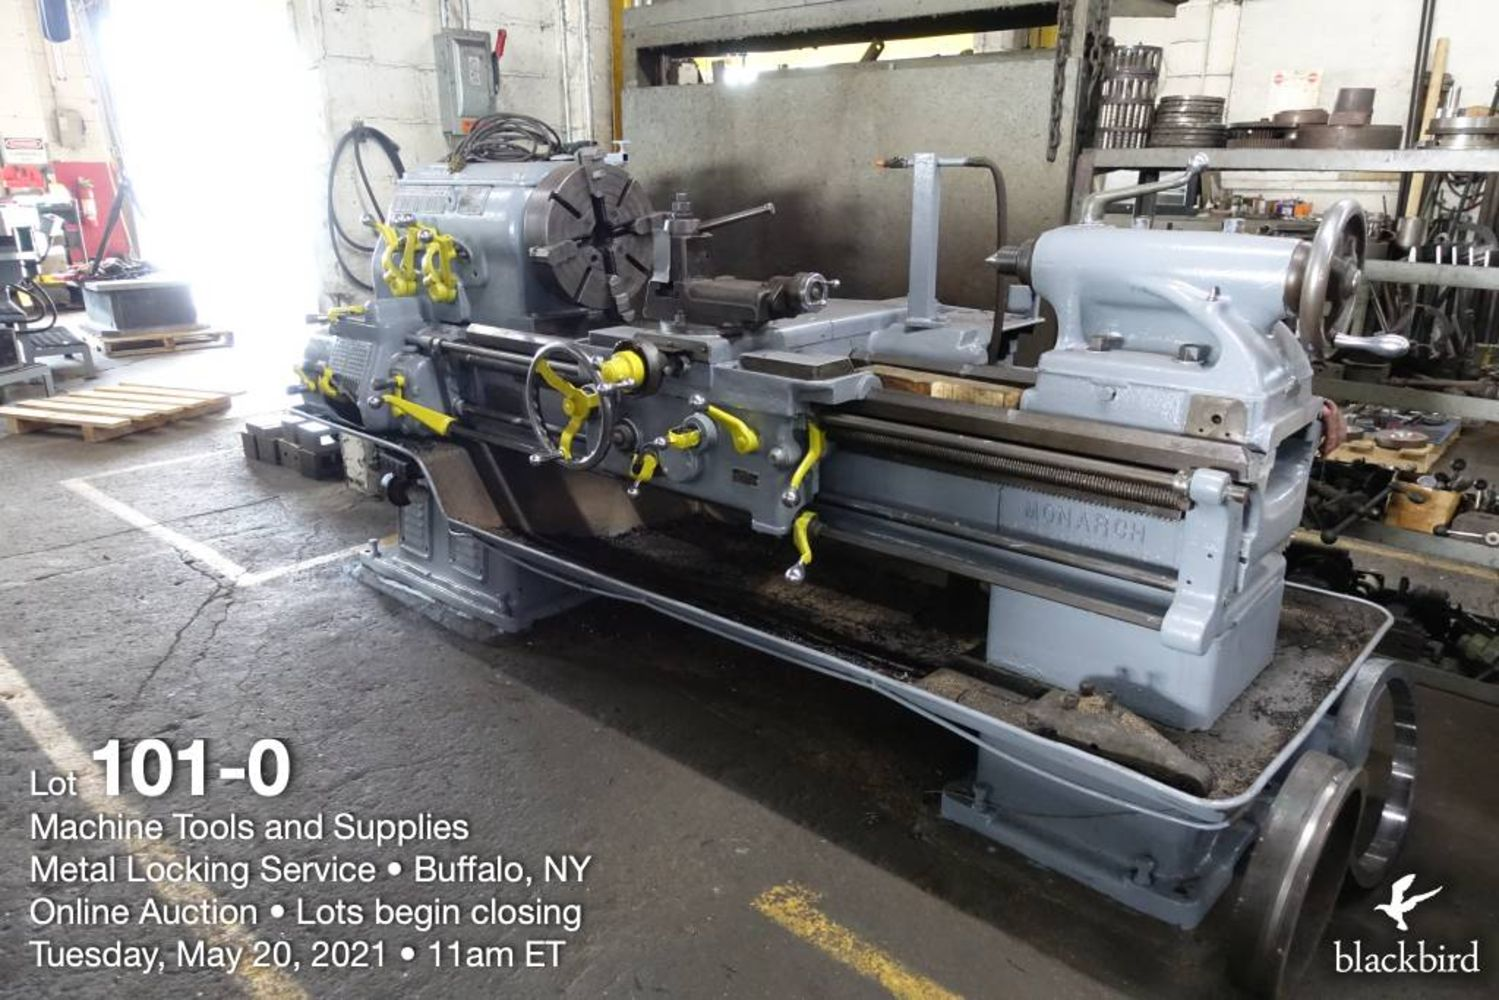 Machine Tools and Tooling - Surplus to Ongoing Operations of Metal Locking Services - Buffalo, NY